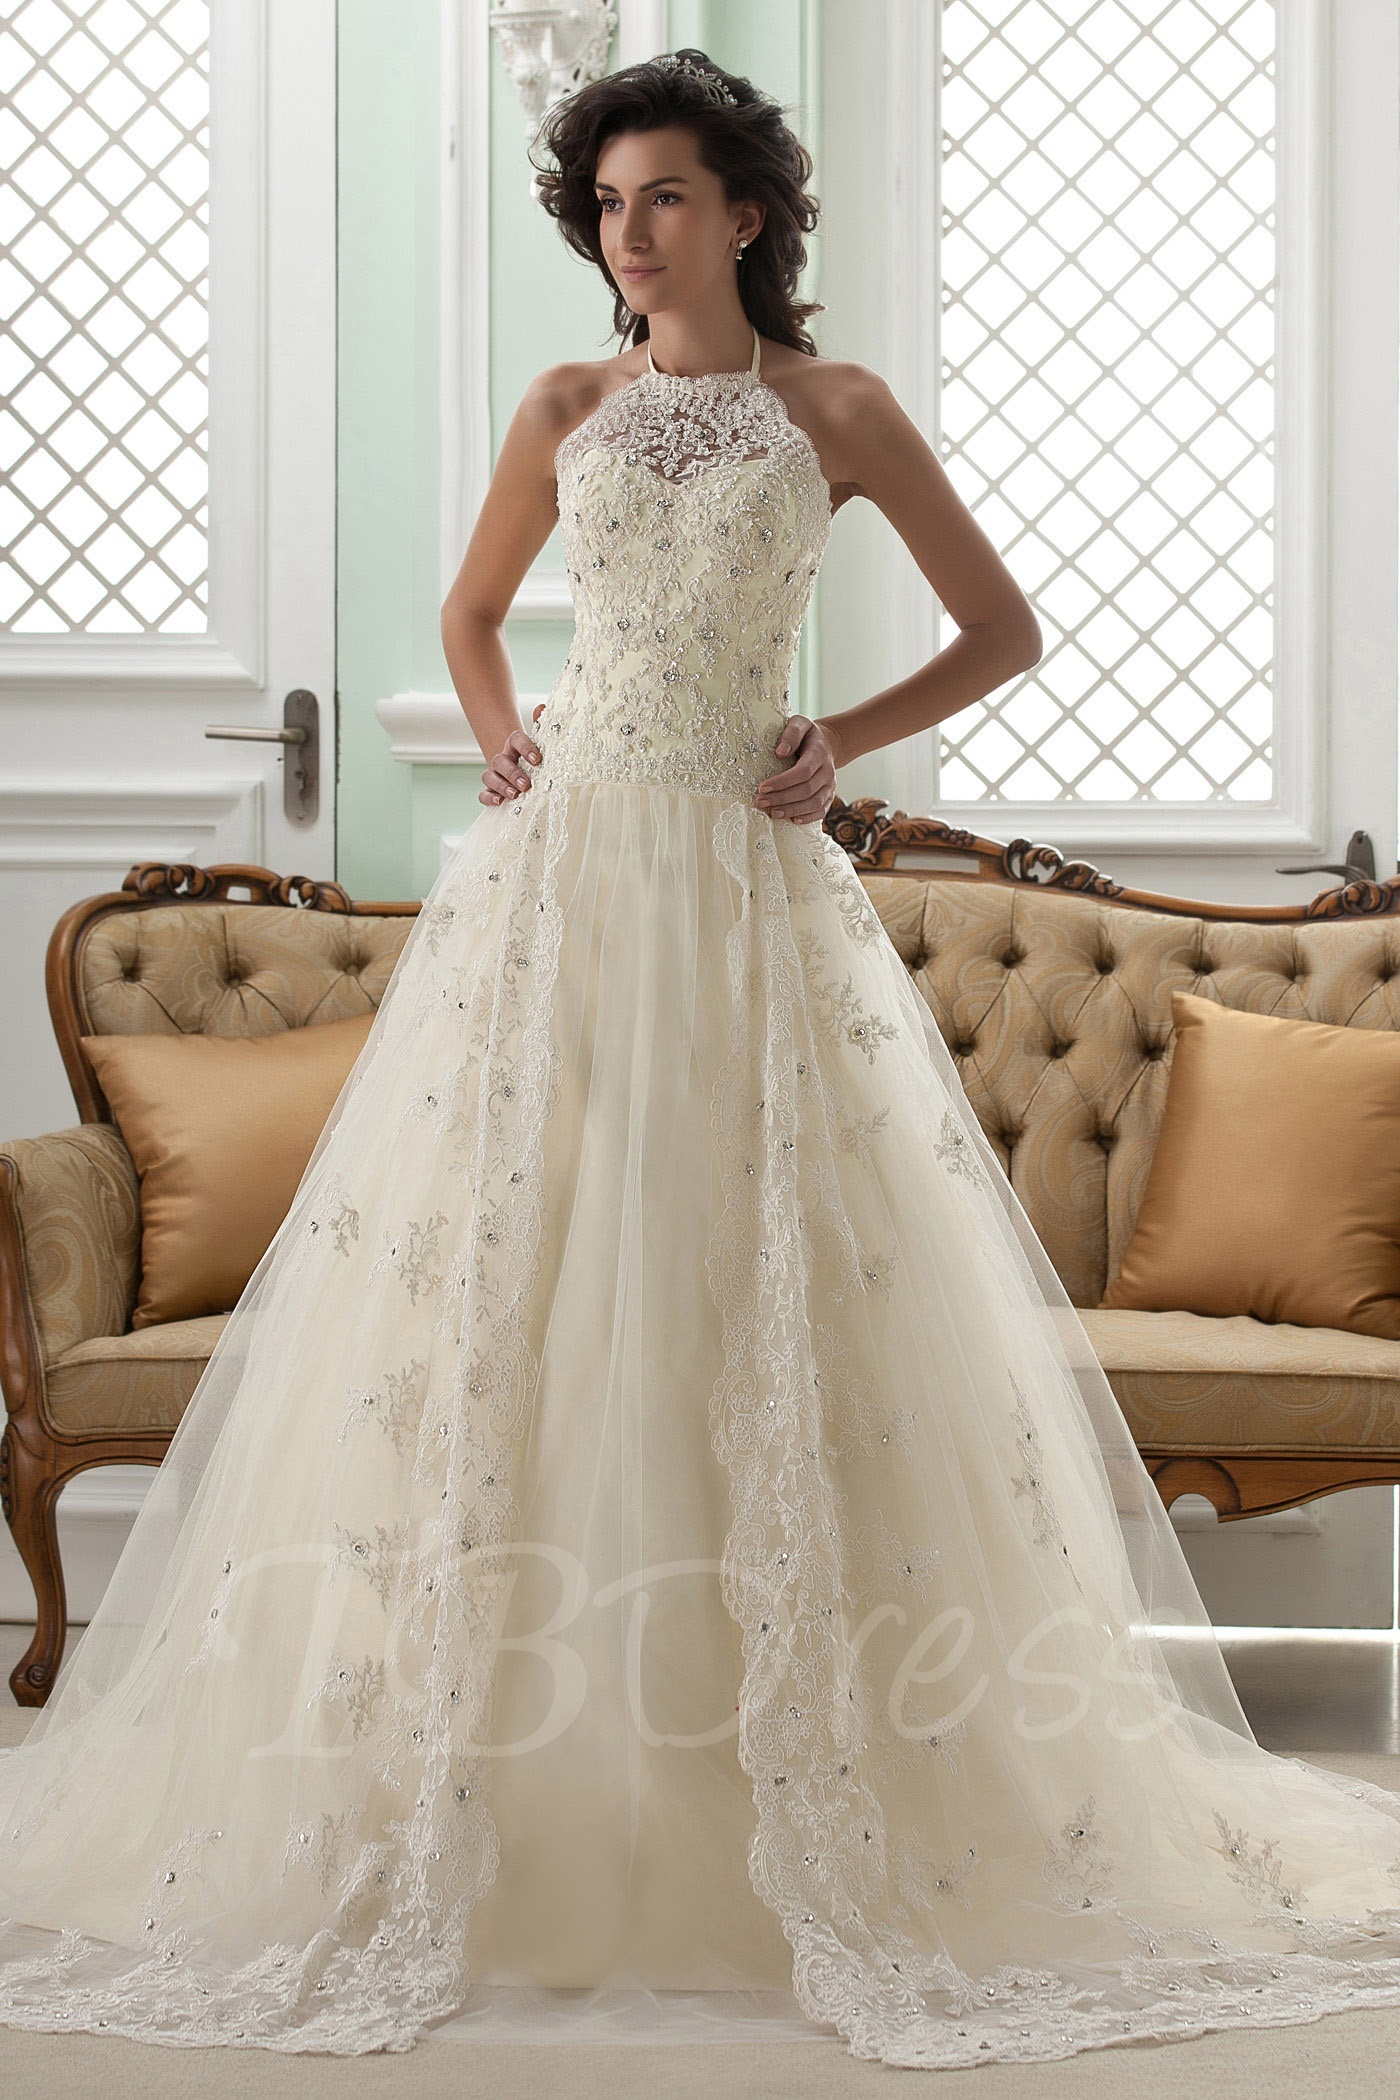 How to shop best for your lace wedding dress?